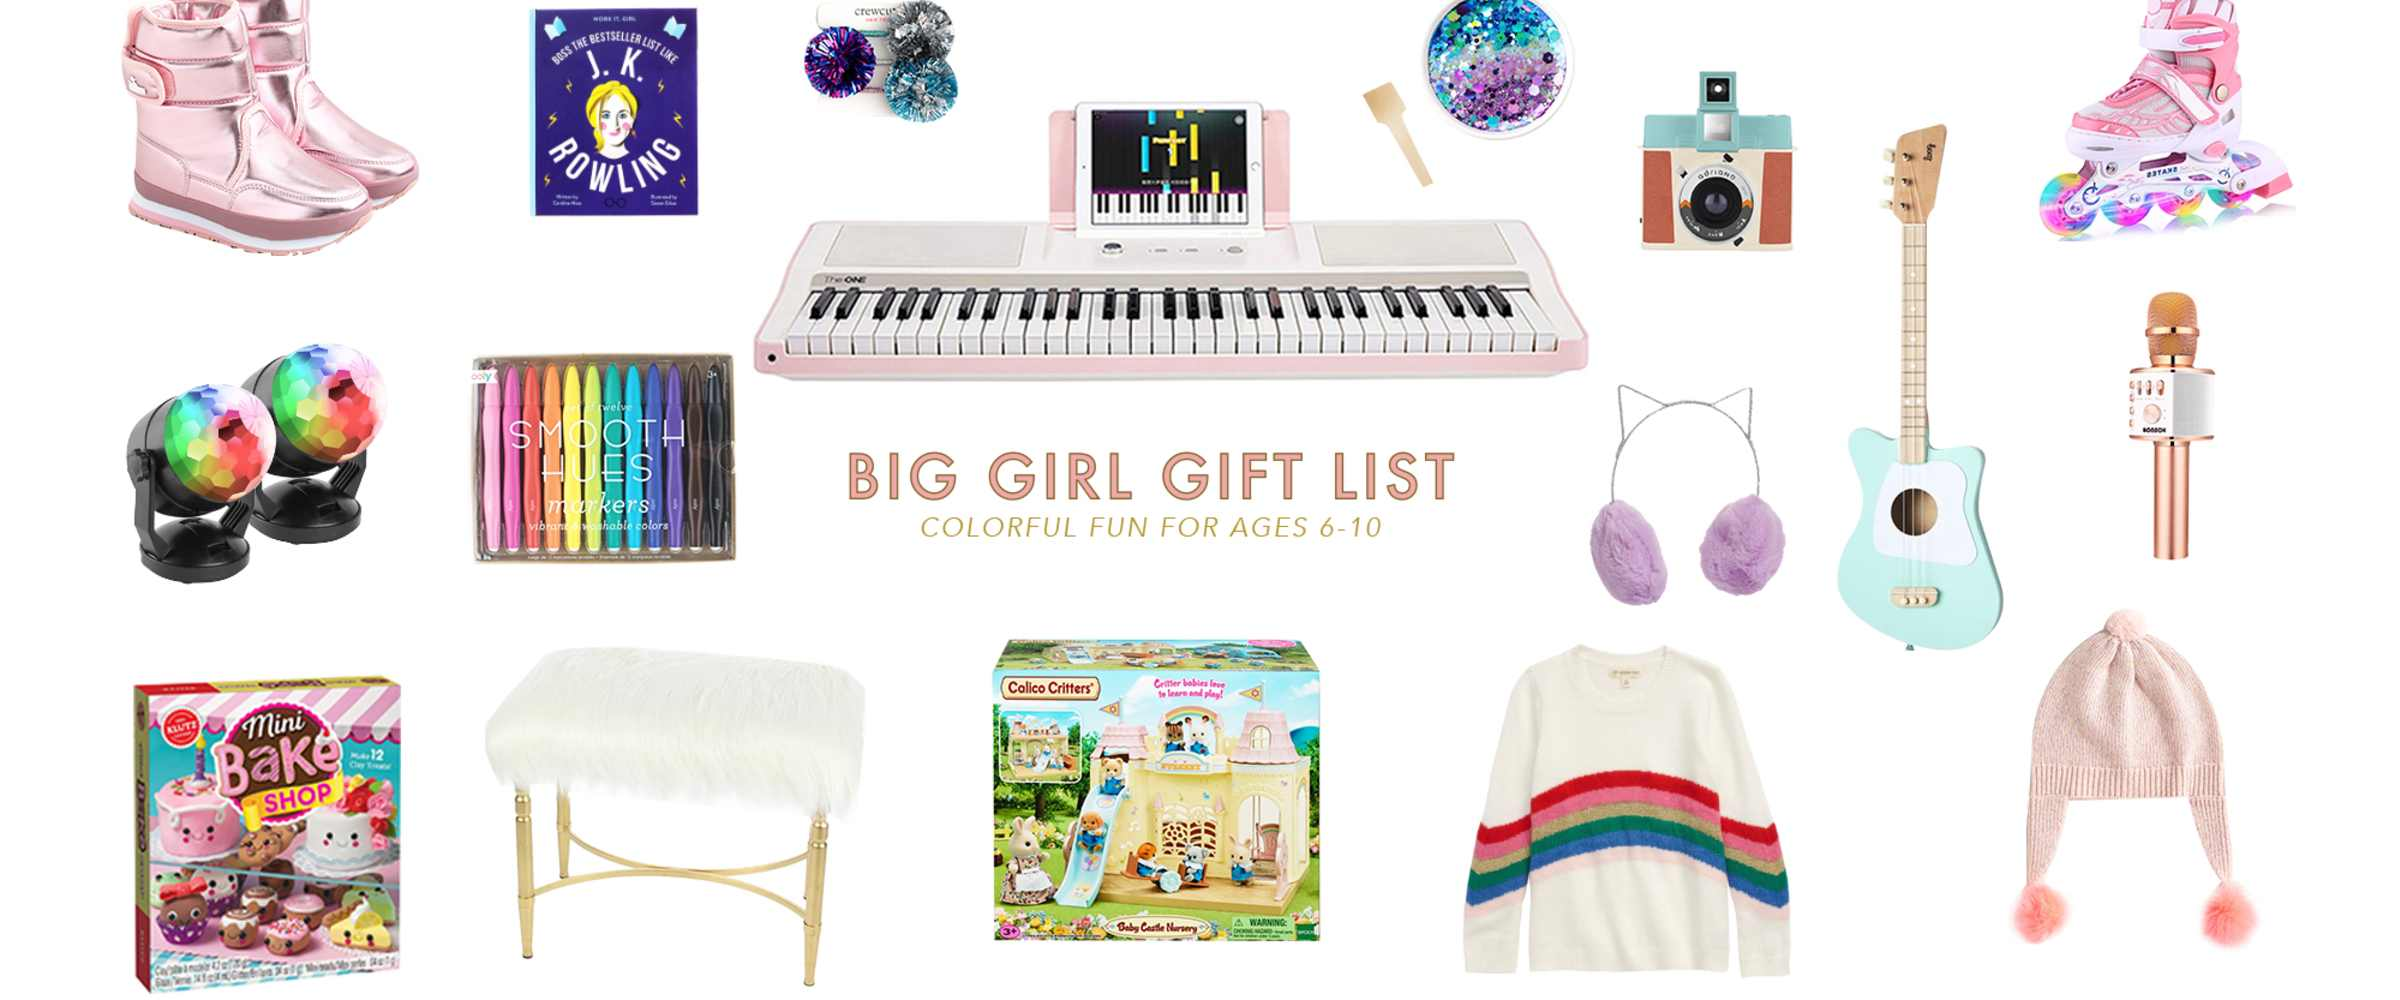 Christmas Gift Ideas for Big Girls, ages 6-10